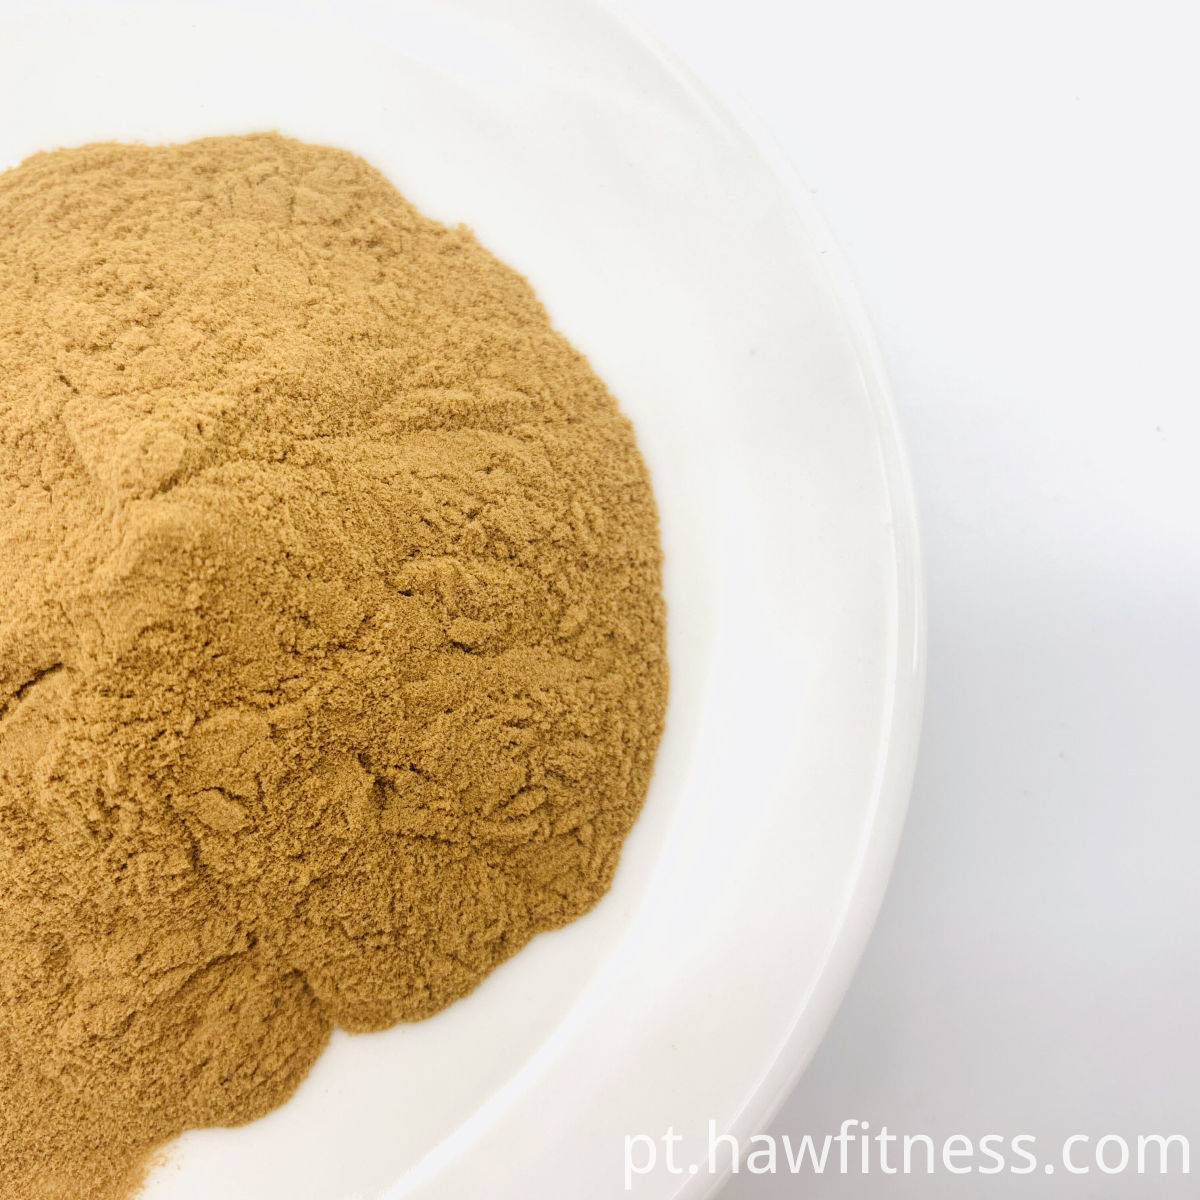 Water-soluble Cinnamon Bark Extract